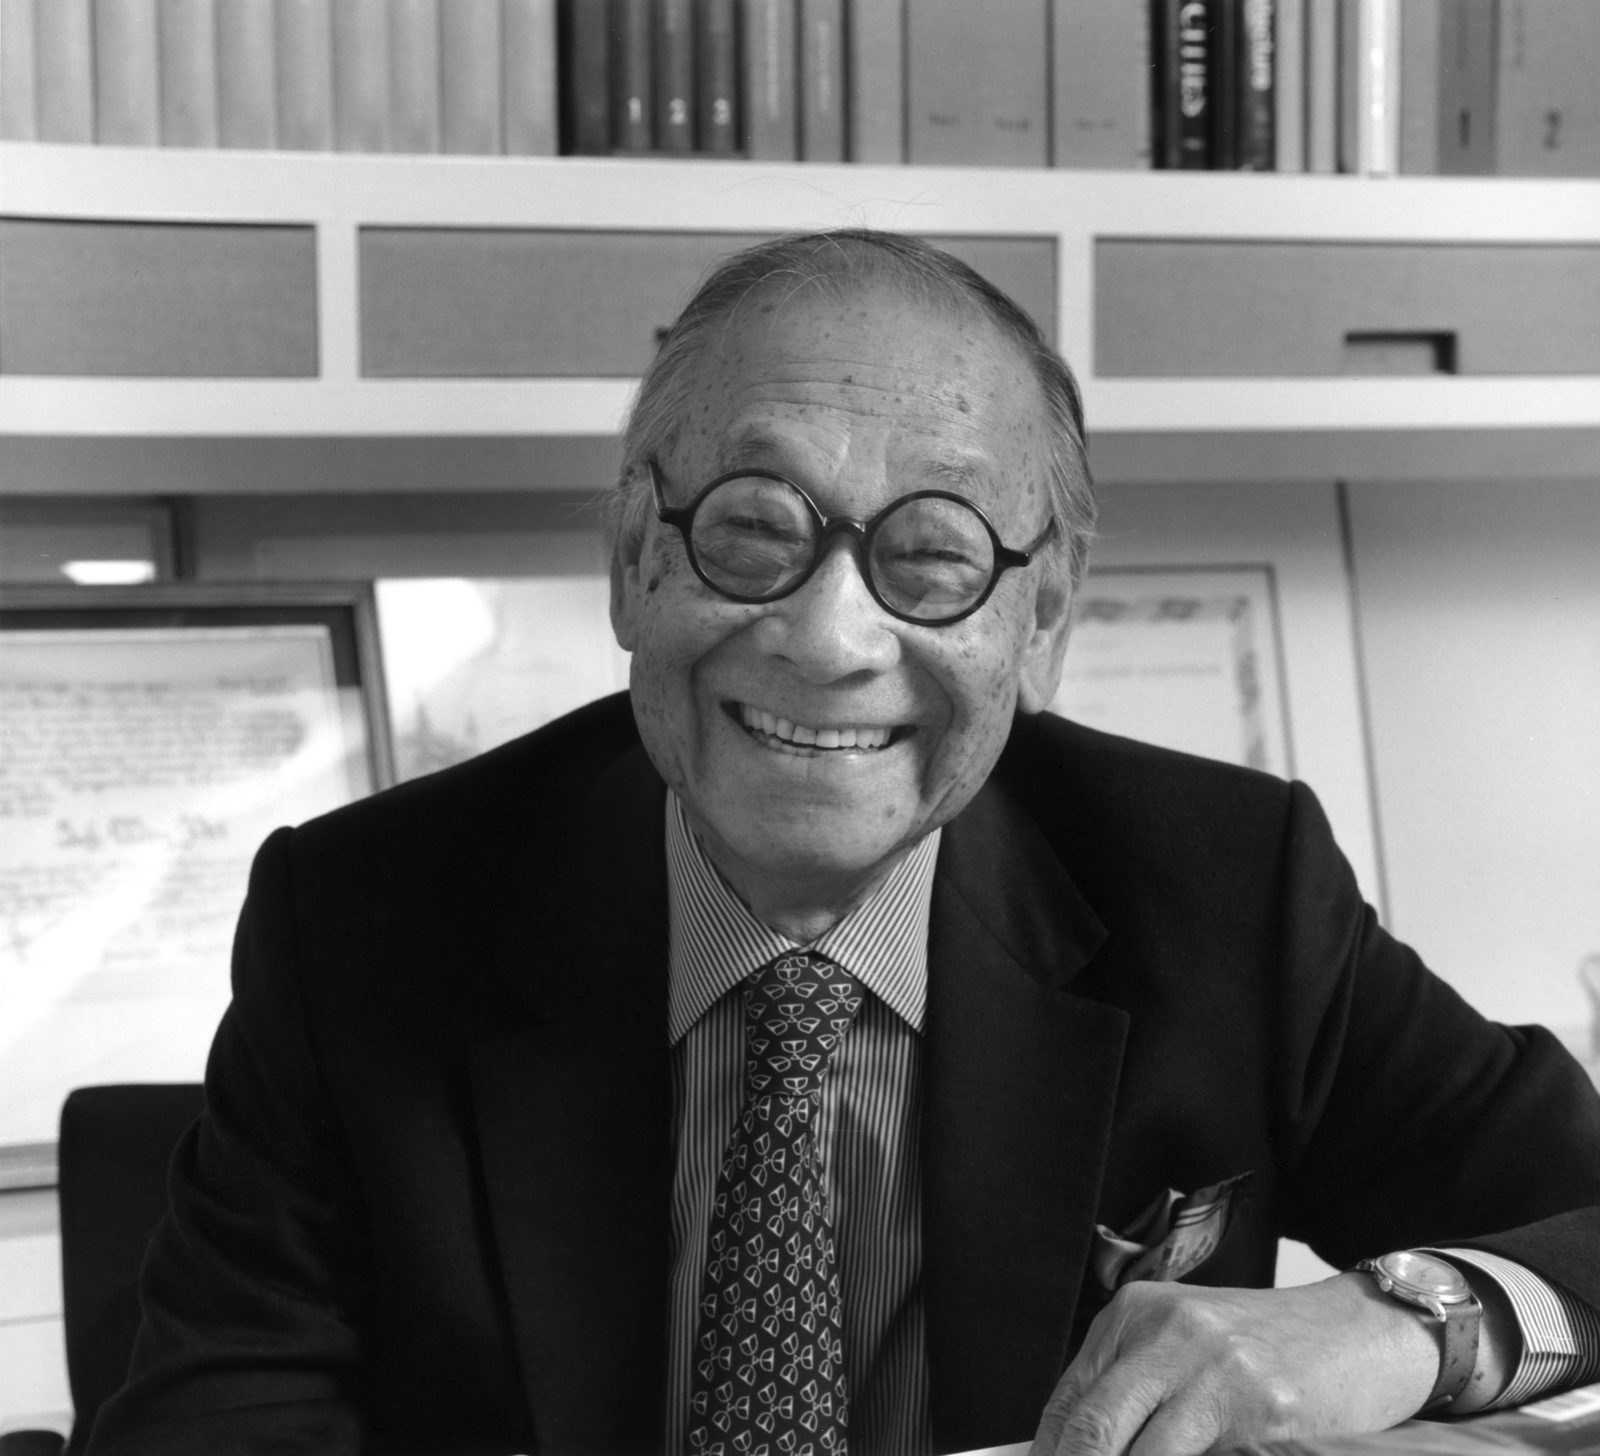 A black and white photo of I.M. Pei